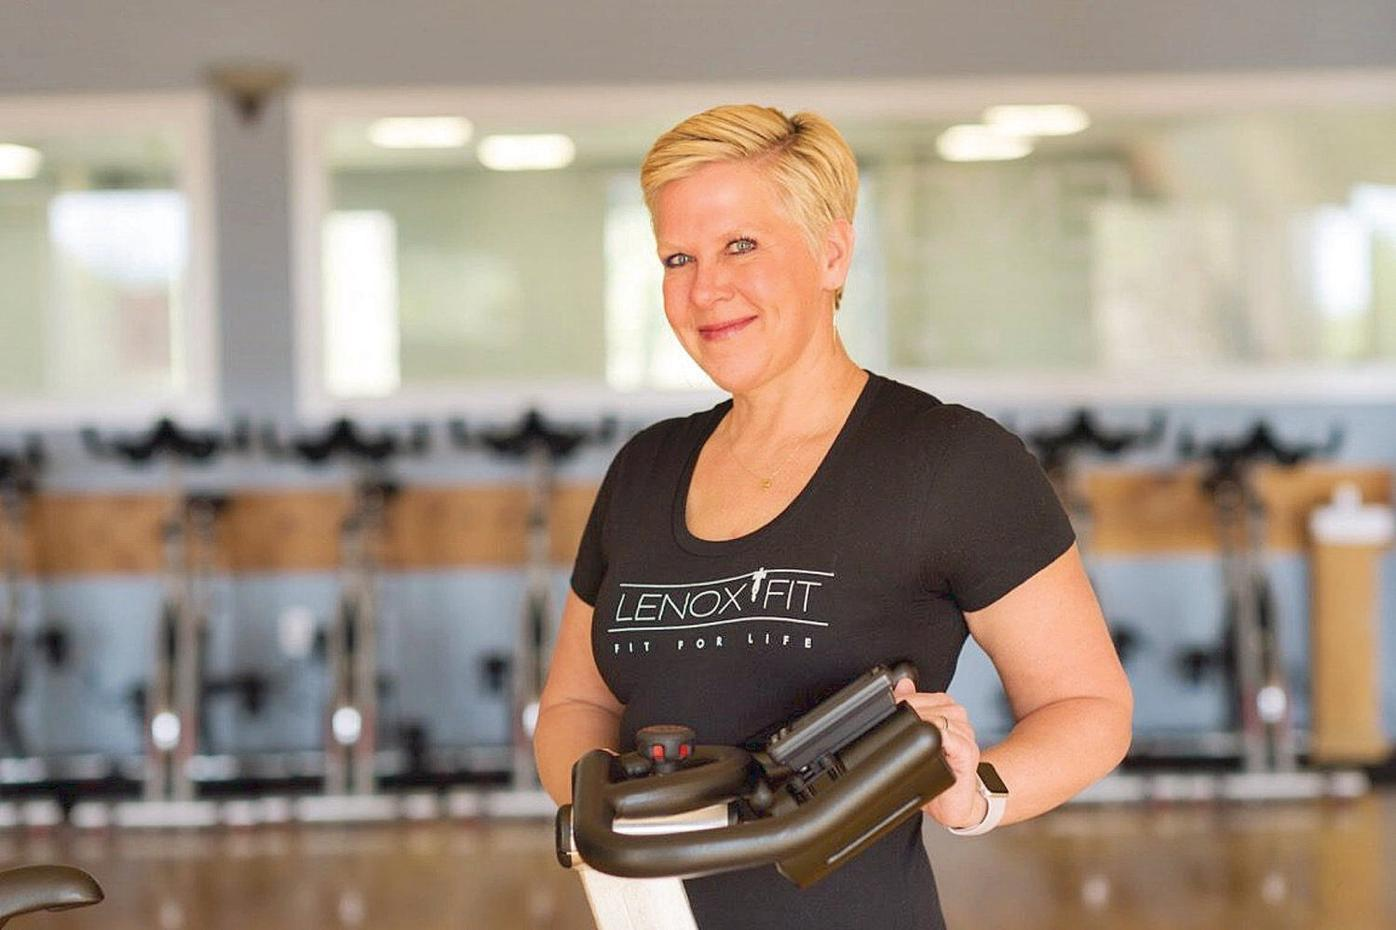 Lenox Fit owner's sweat equity earns U.S. Small Business Administration honor